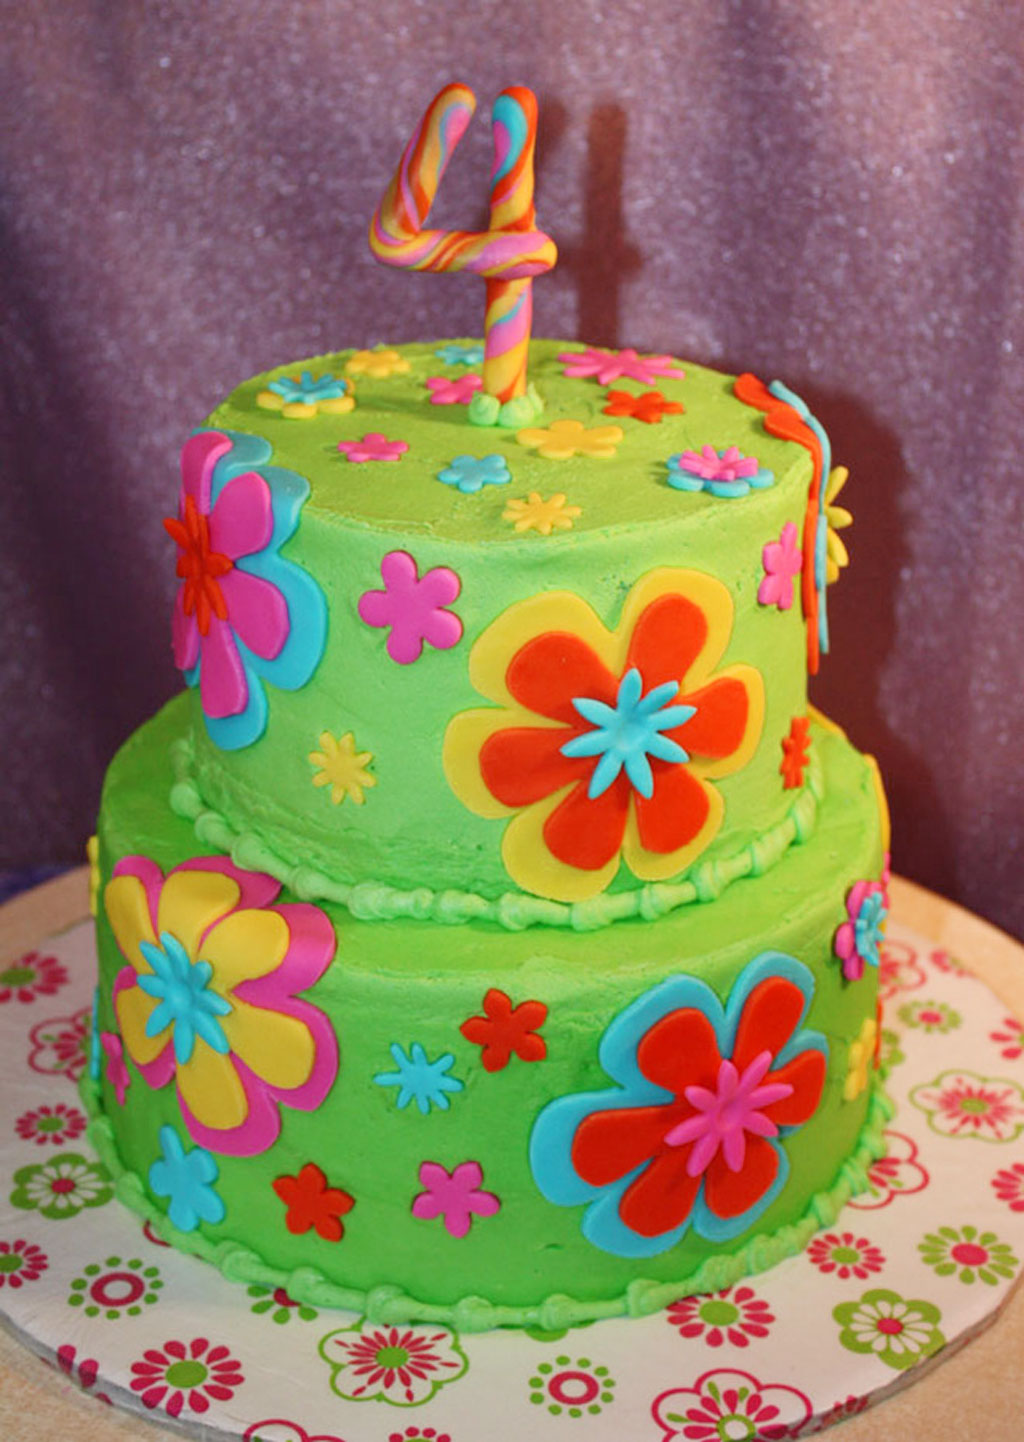 Cake Decorating With Fondant Flowers : Fondant Flowers Birthday Cakes Birthday Cake - Cake Ideas ...